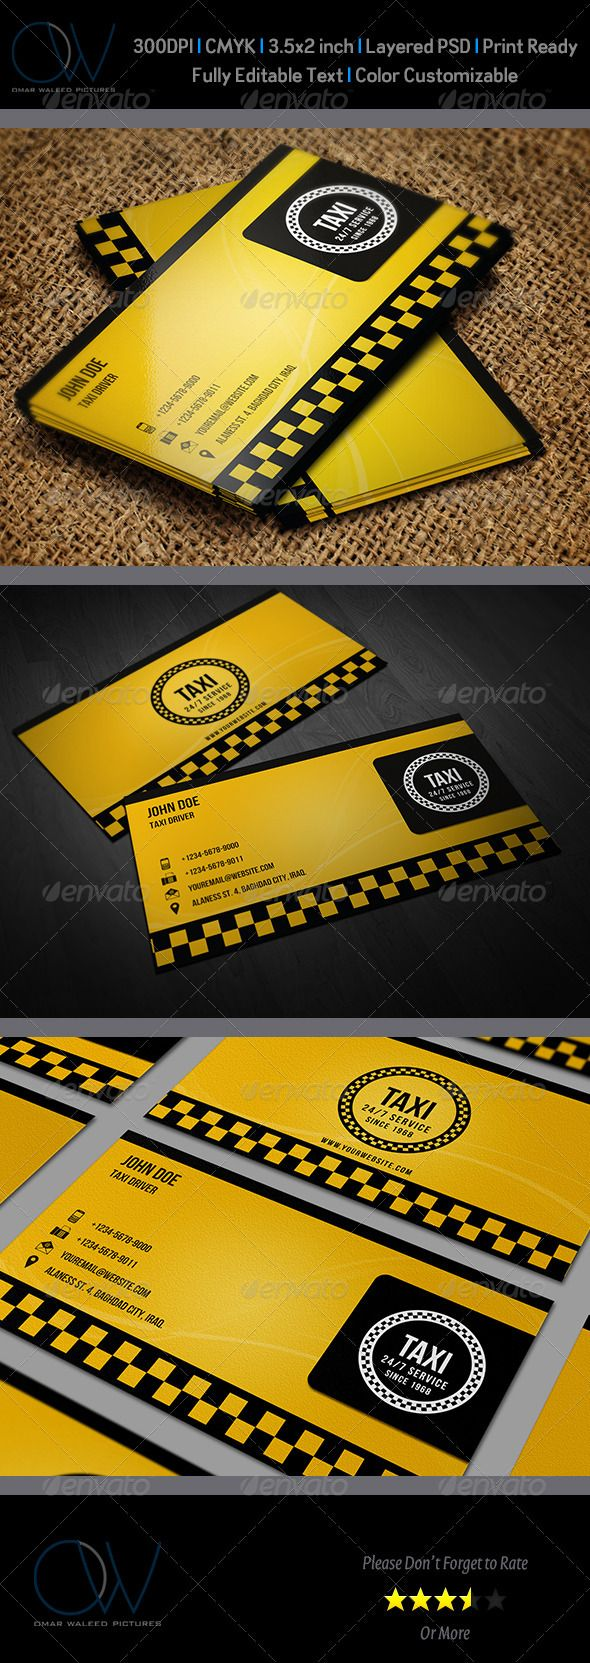 120 best business card images on pinterest fonts business cards taxi business card magicingreecefo Gallery